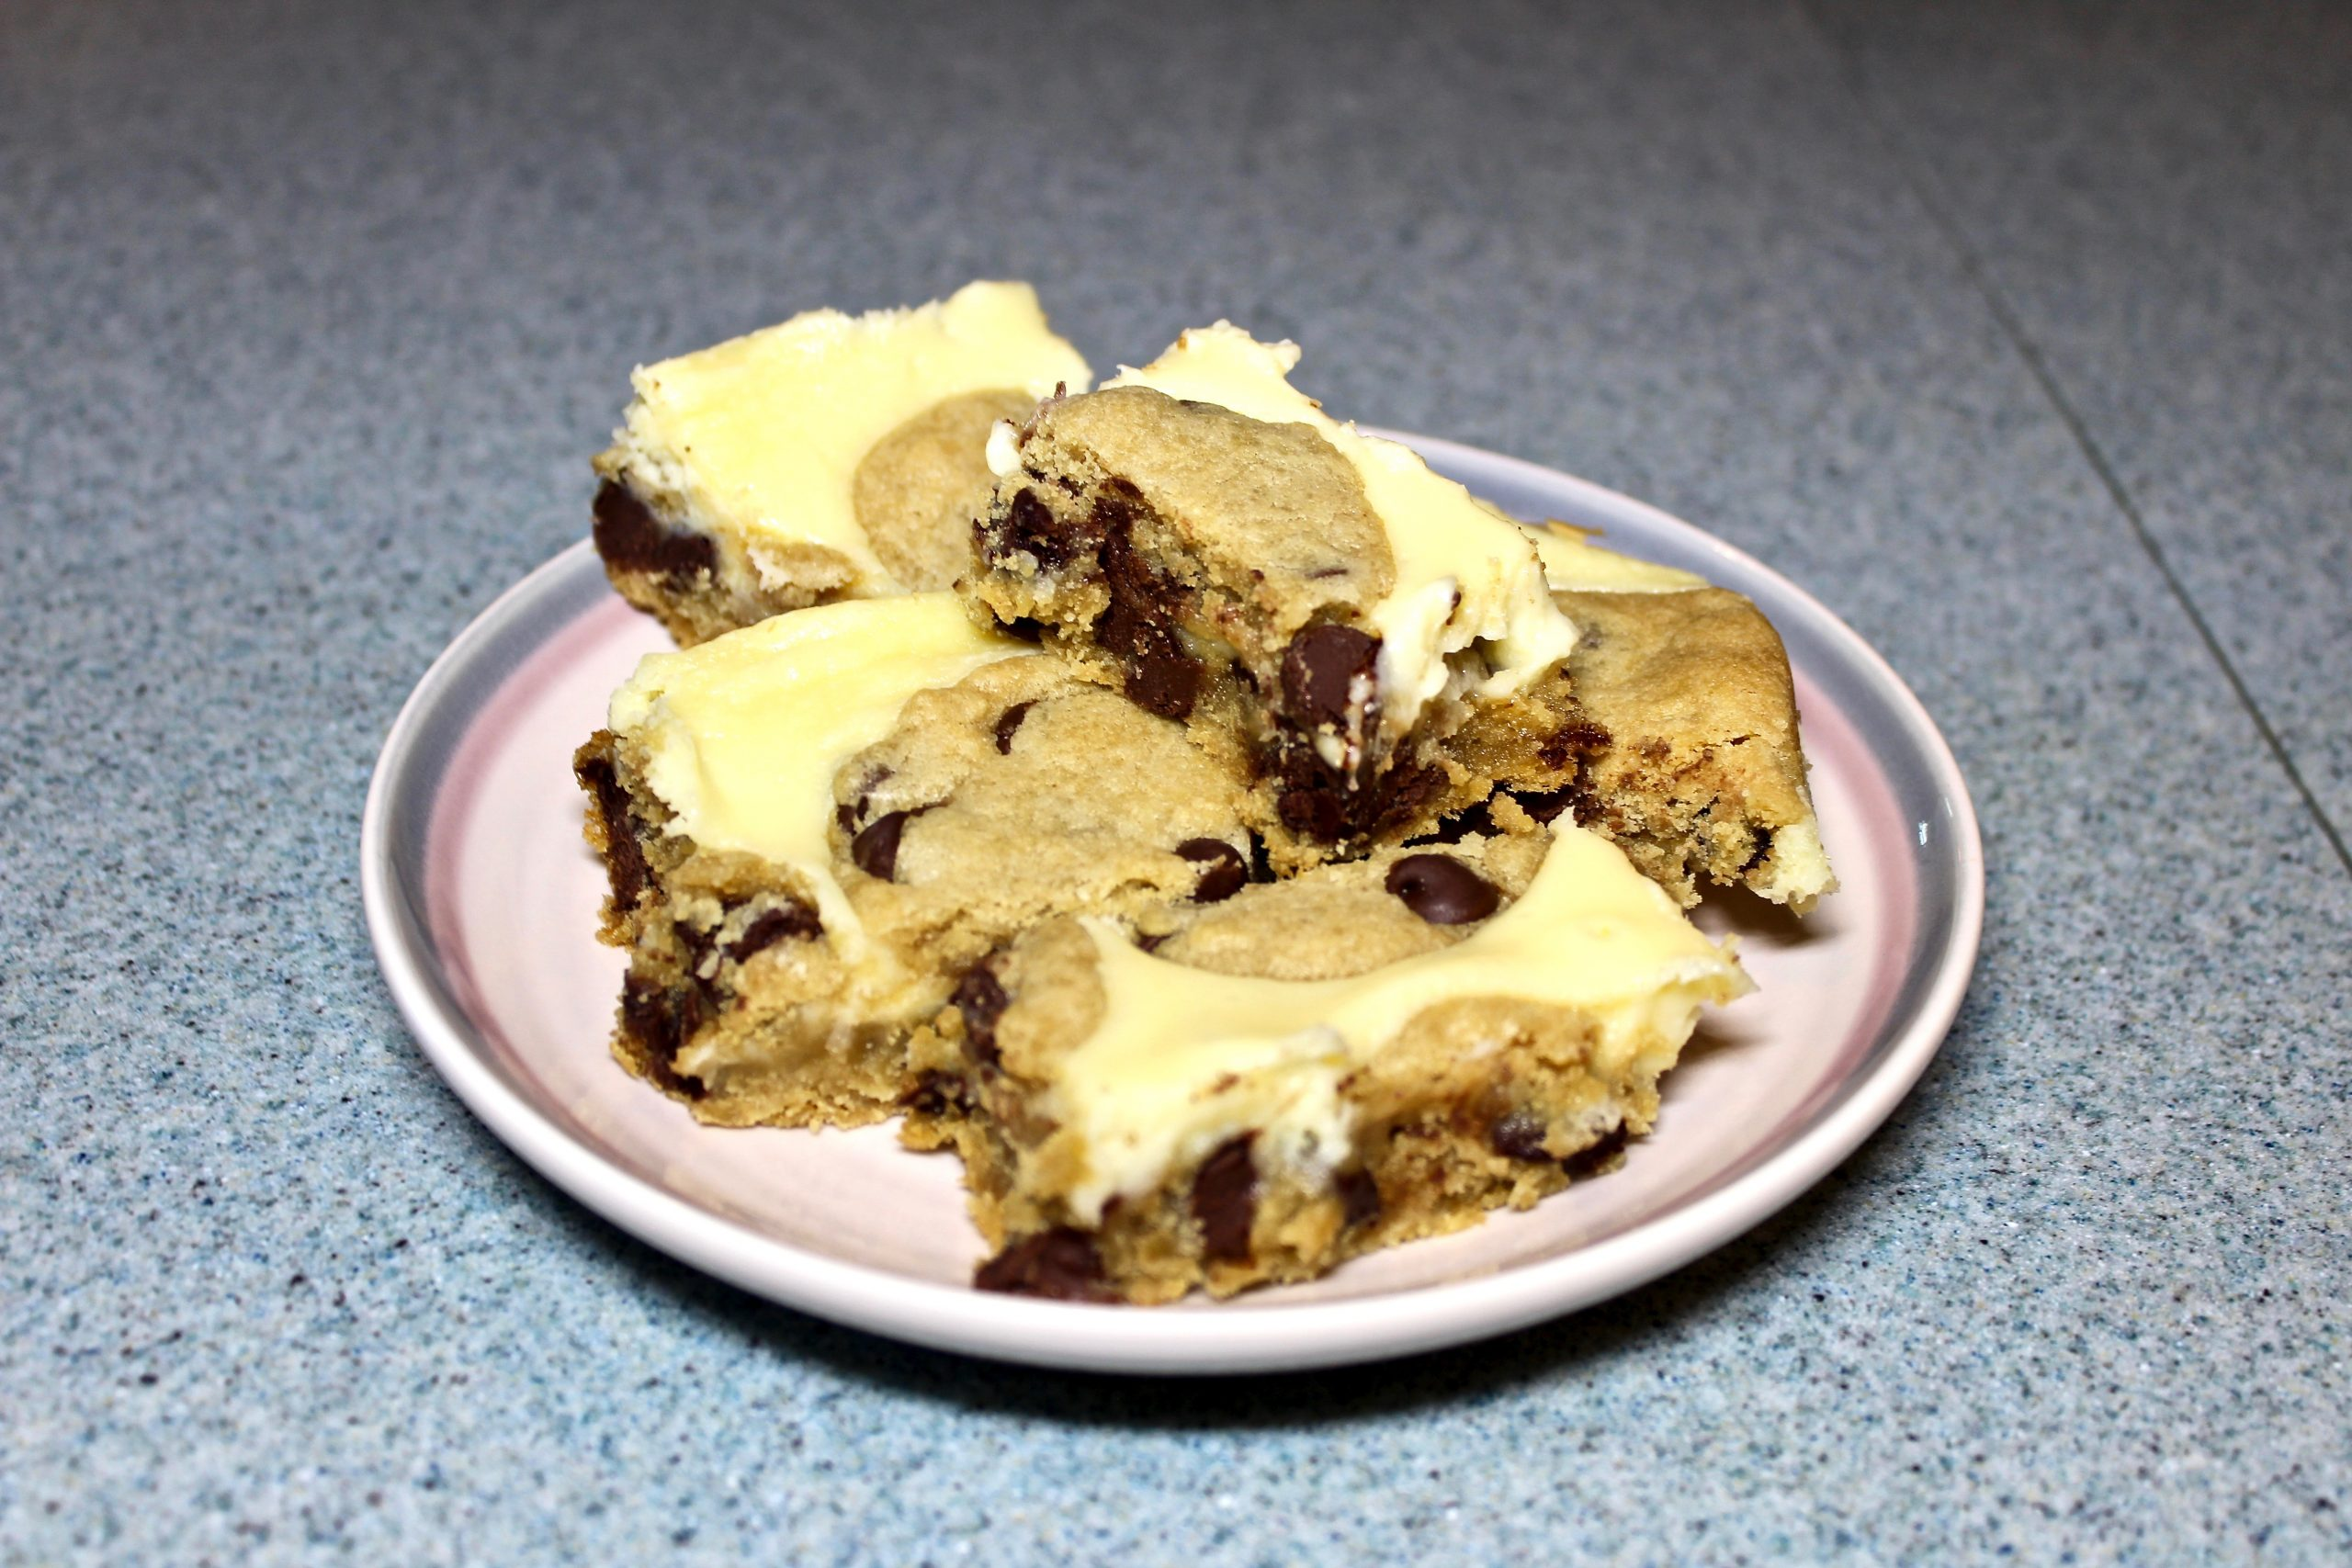 Tasty And Easy Dessert: Chocolate Chip Cream Cheese Bars